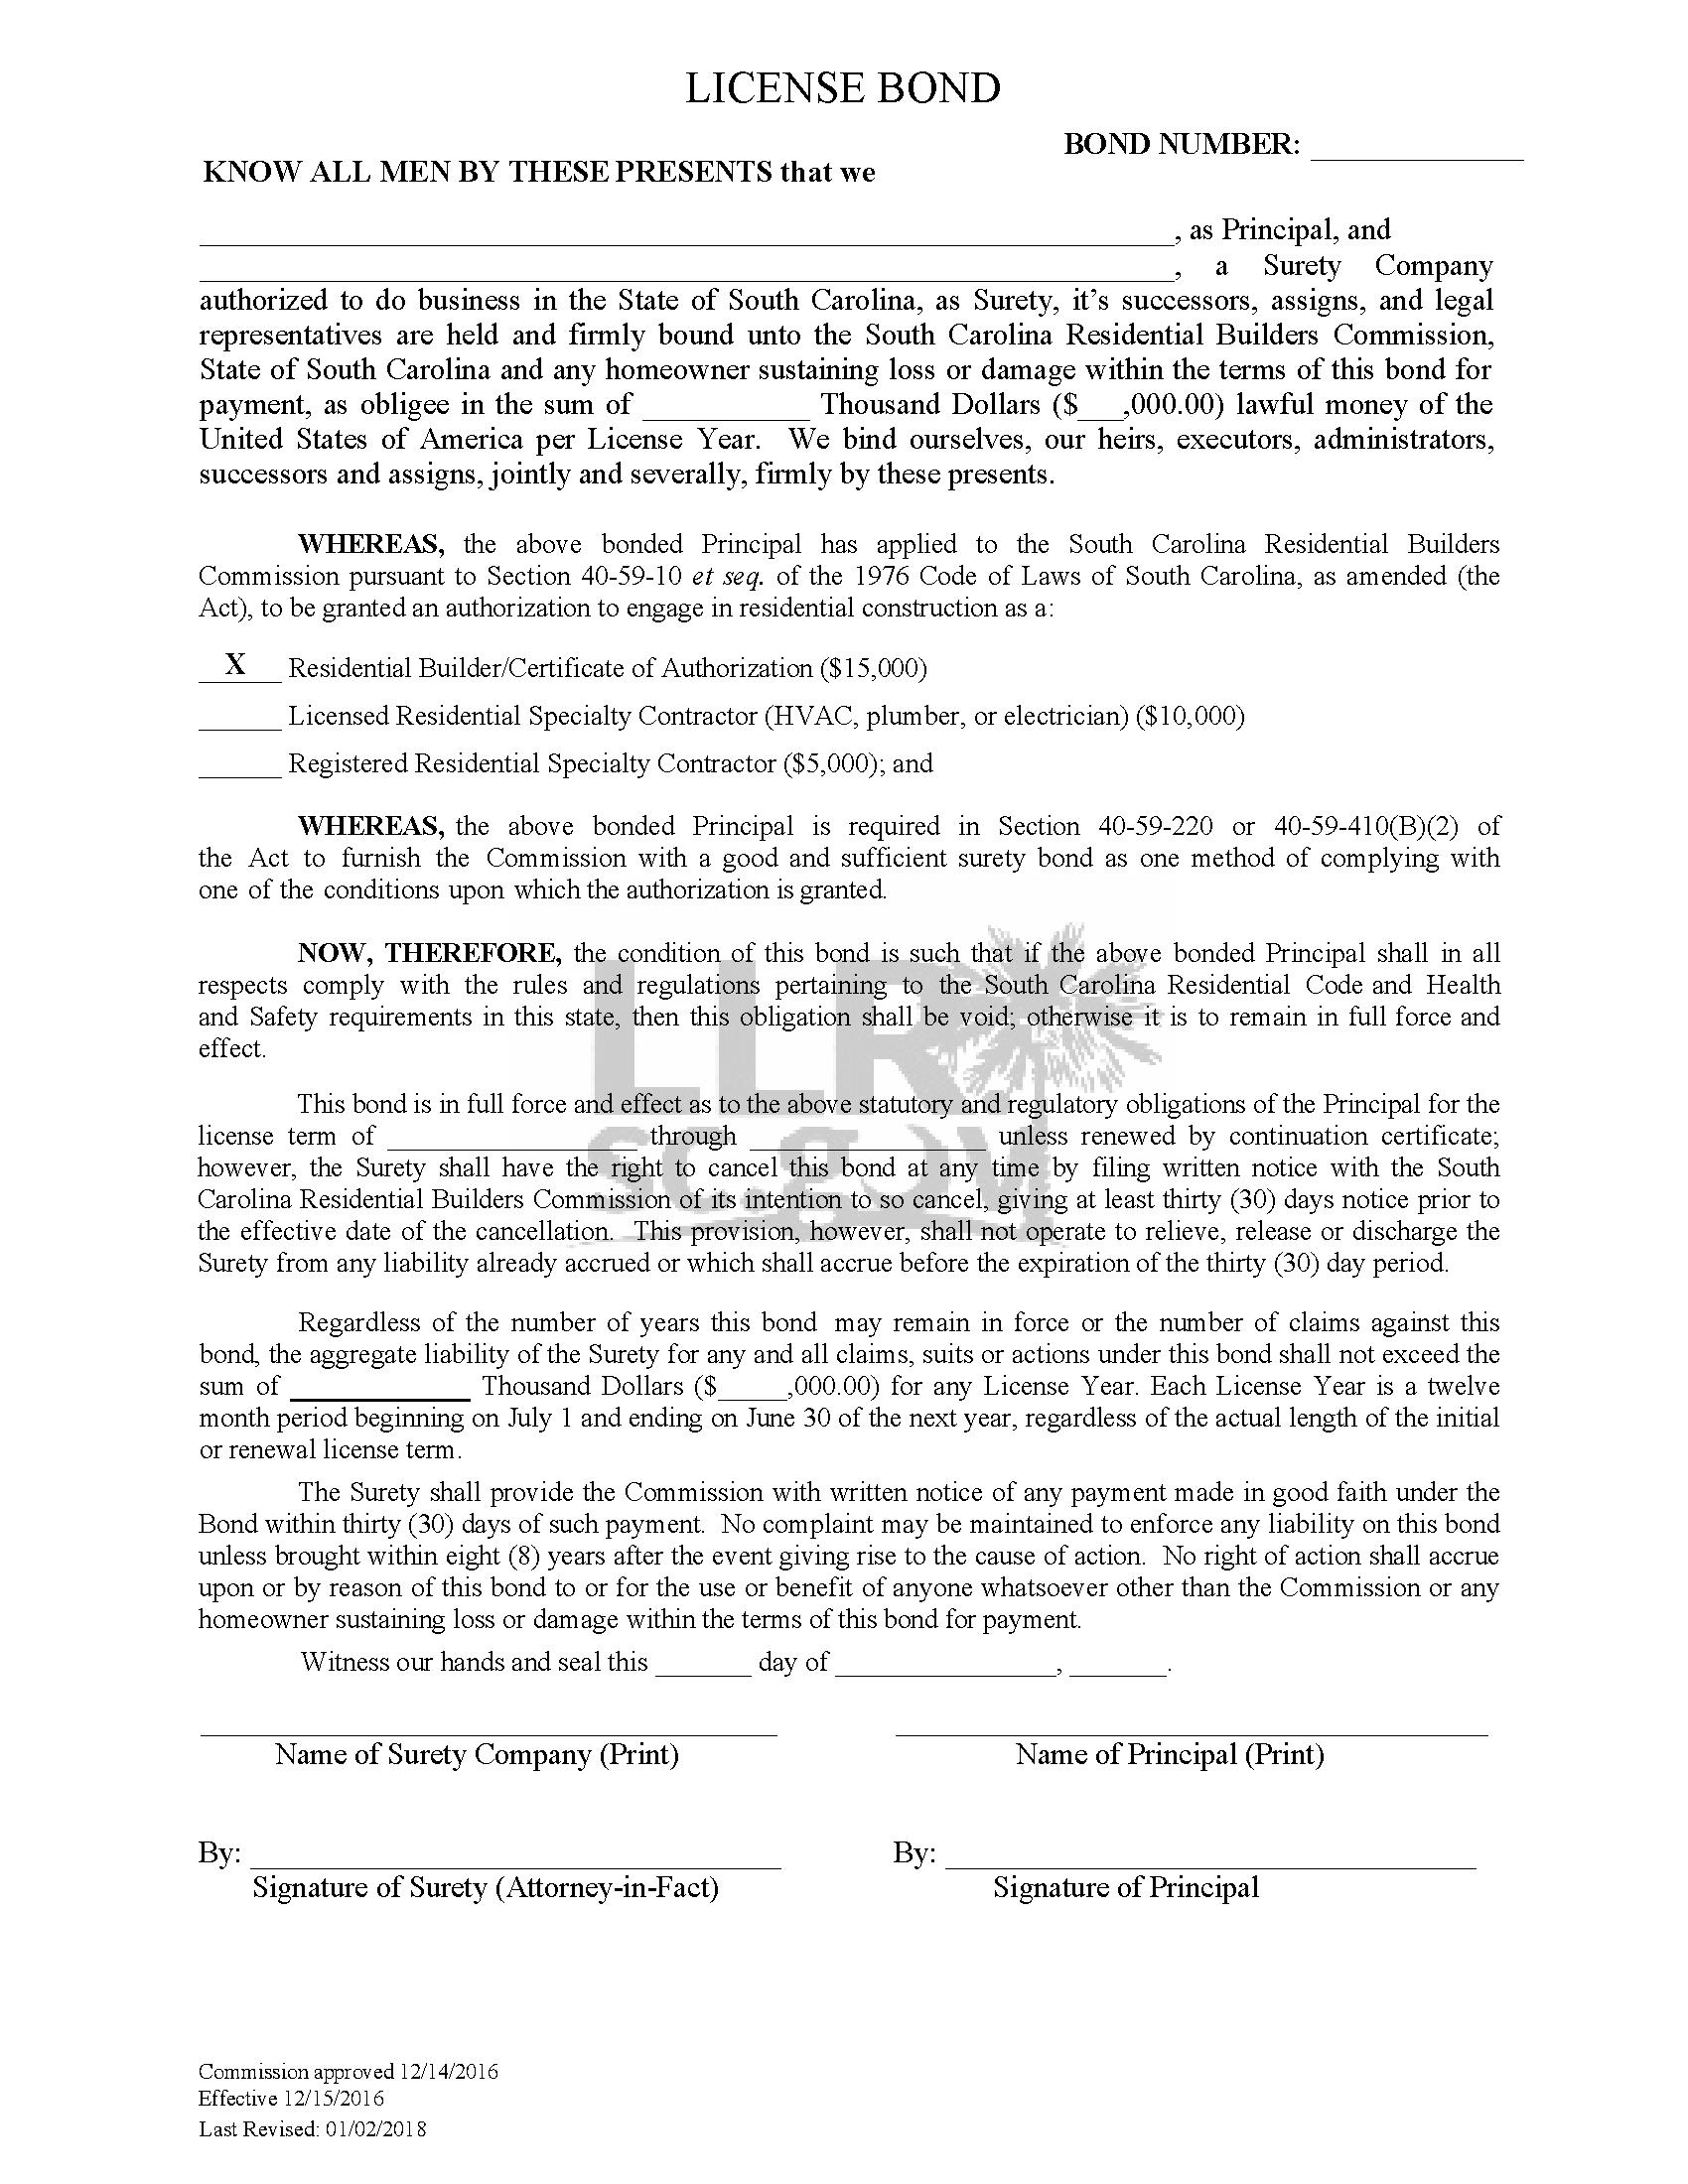 State of South Carolina Residential Builder/Certificate of Authorization sample image